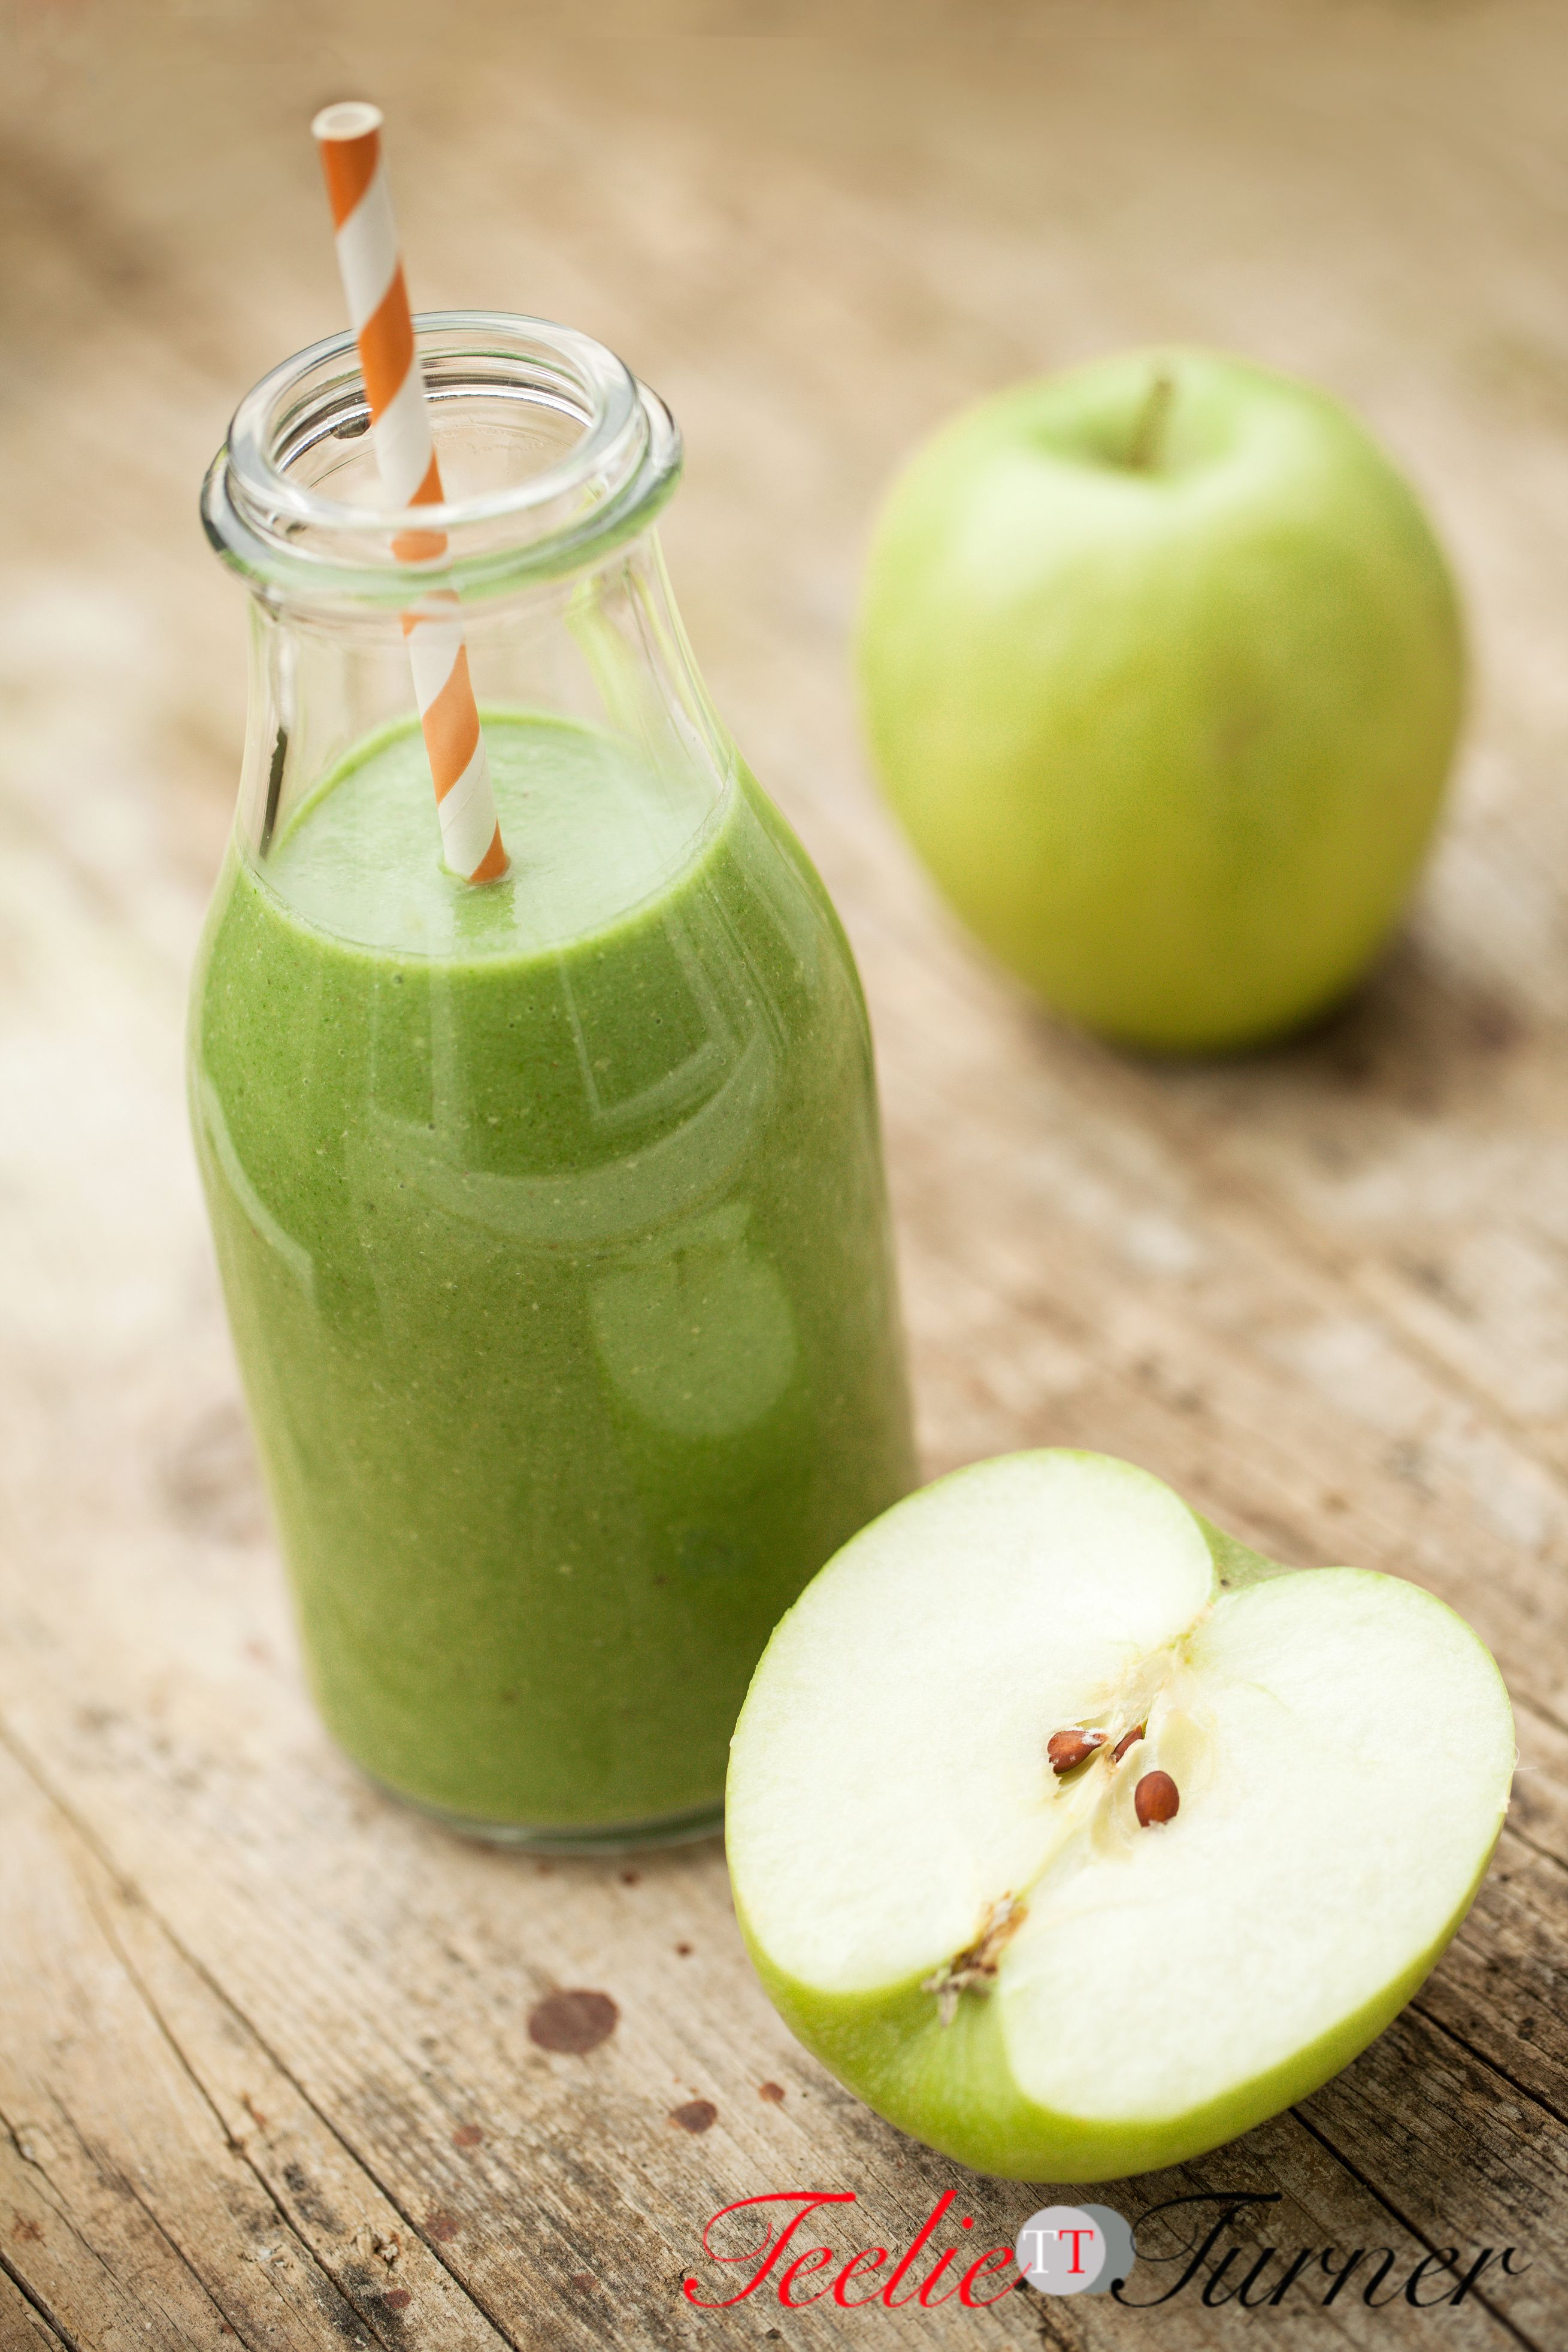 Asthmatics who drink apple juice daily will encounter less